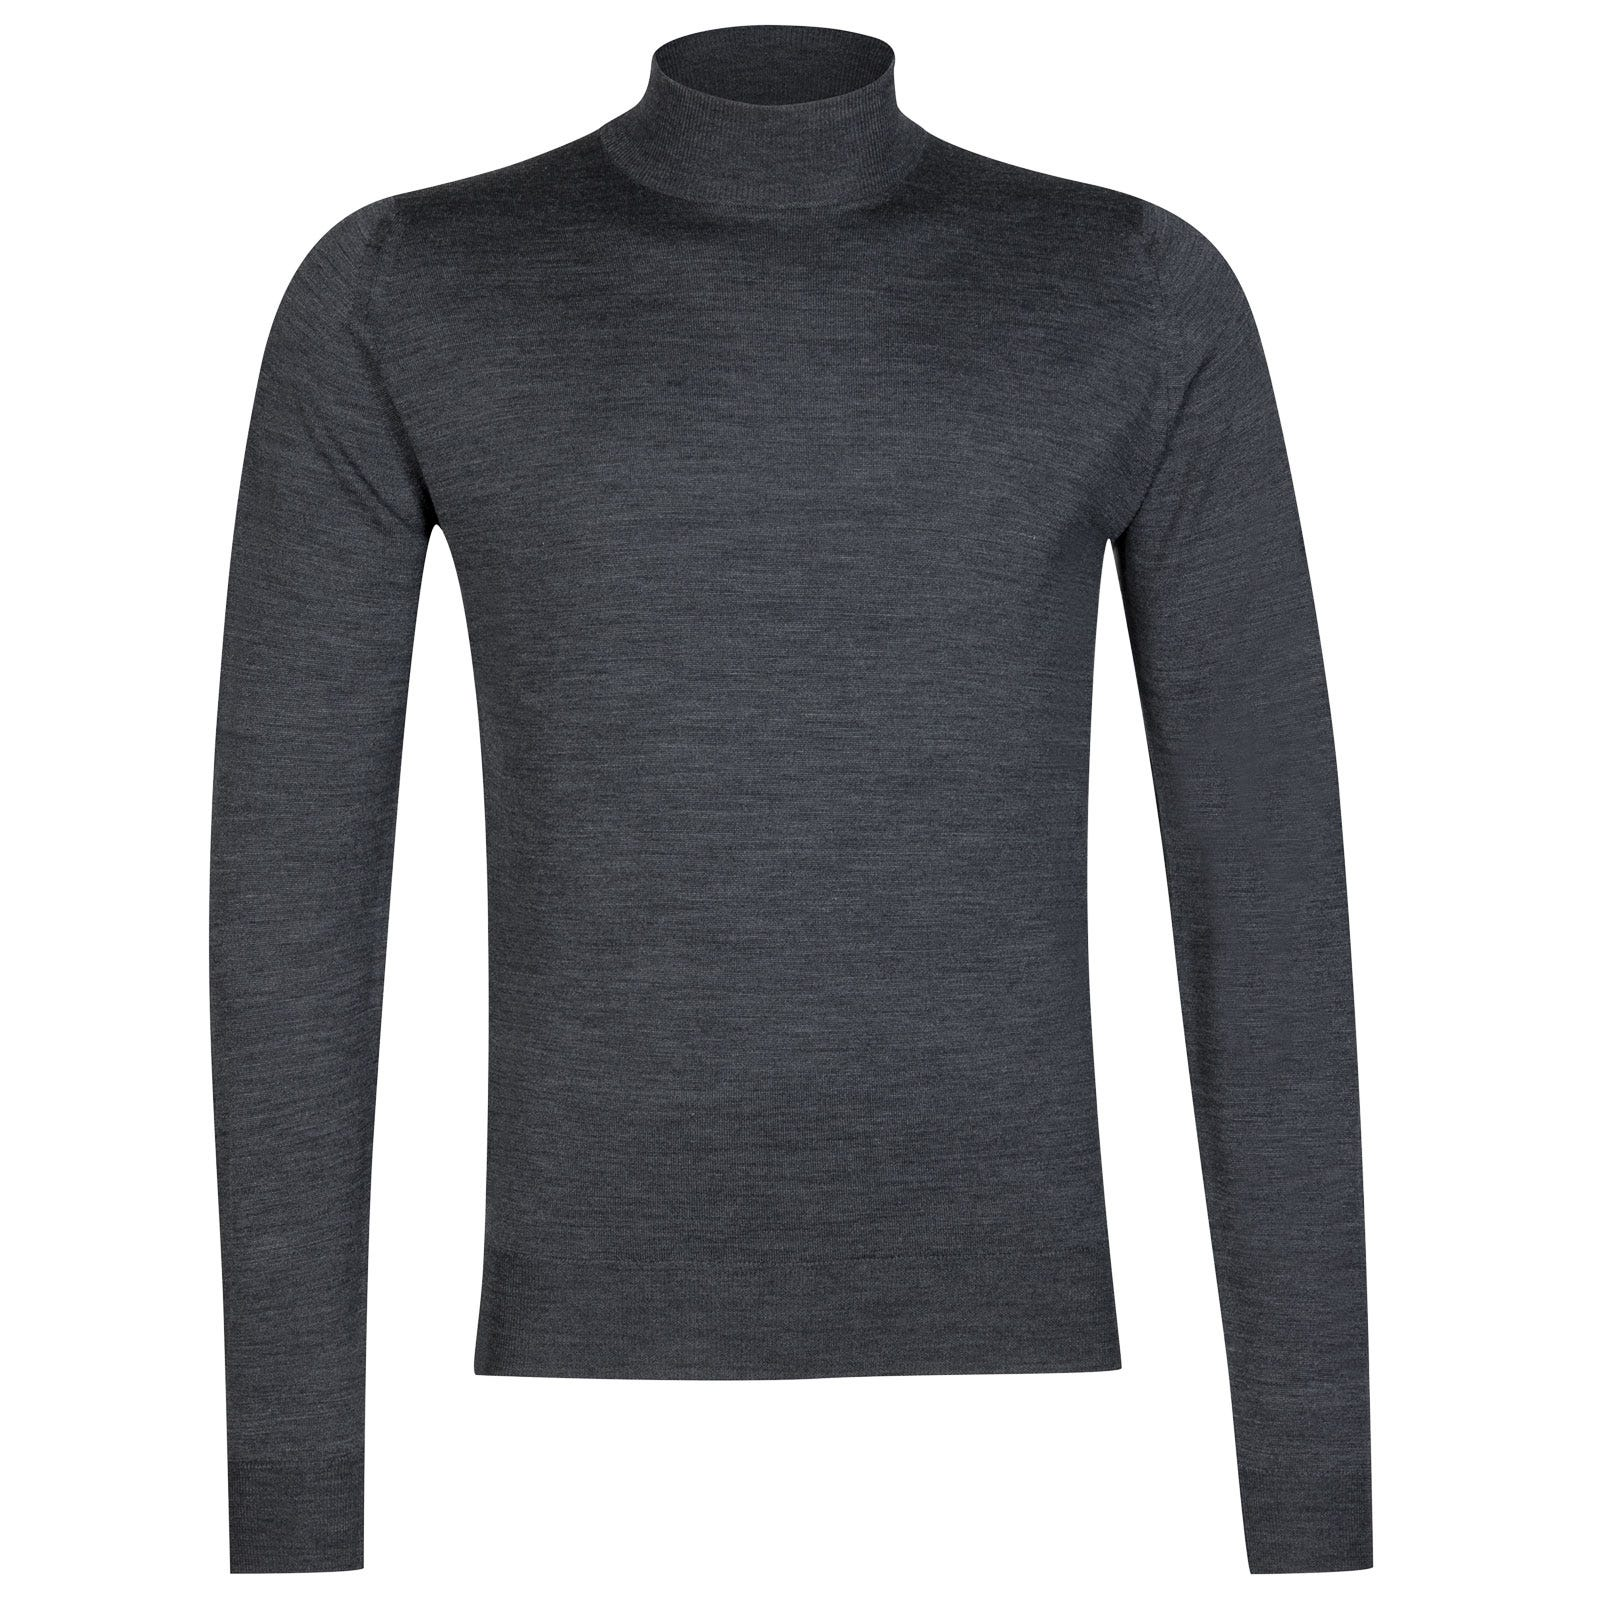 John Smedley harcourt Merino Wool Pullover in Charcoal-XXL